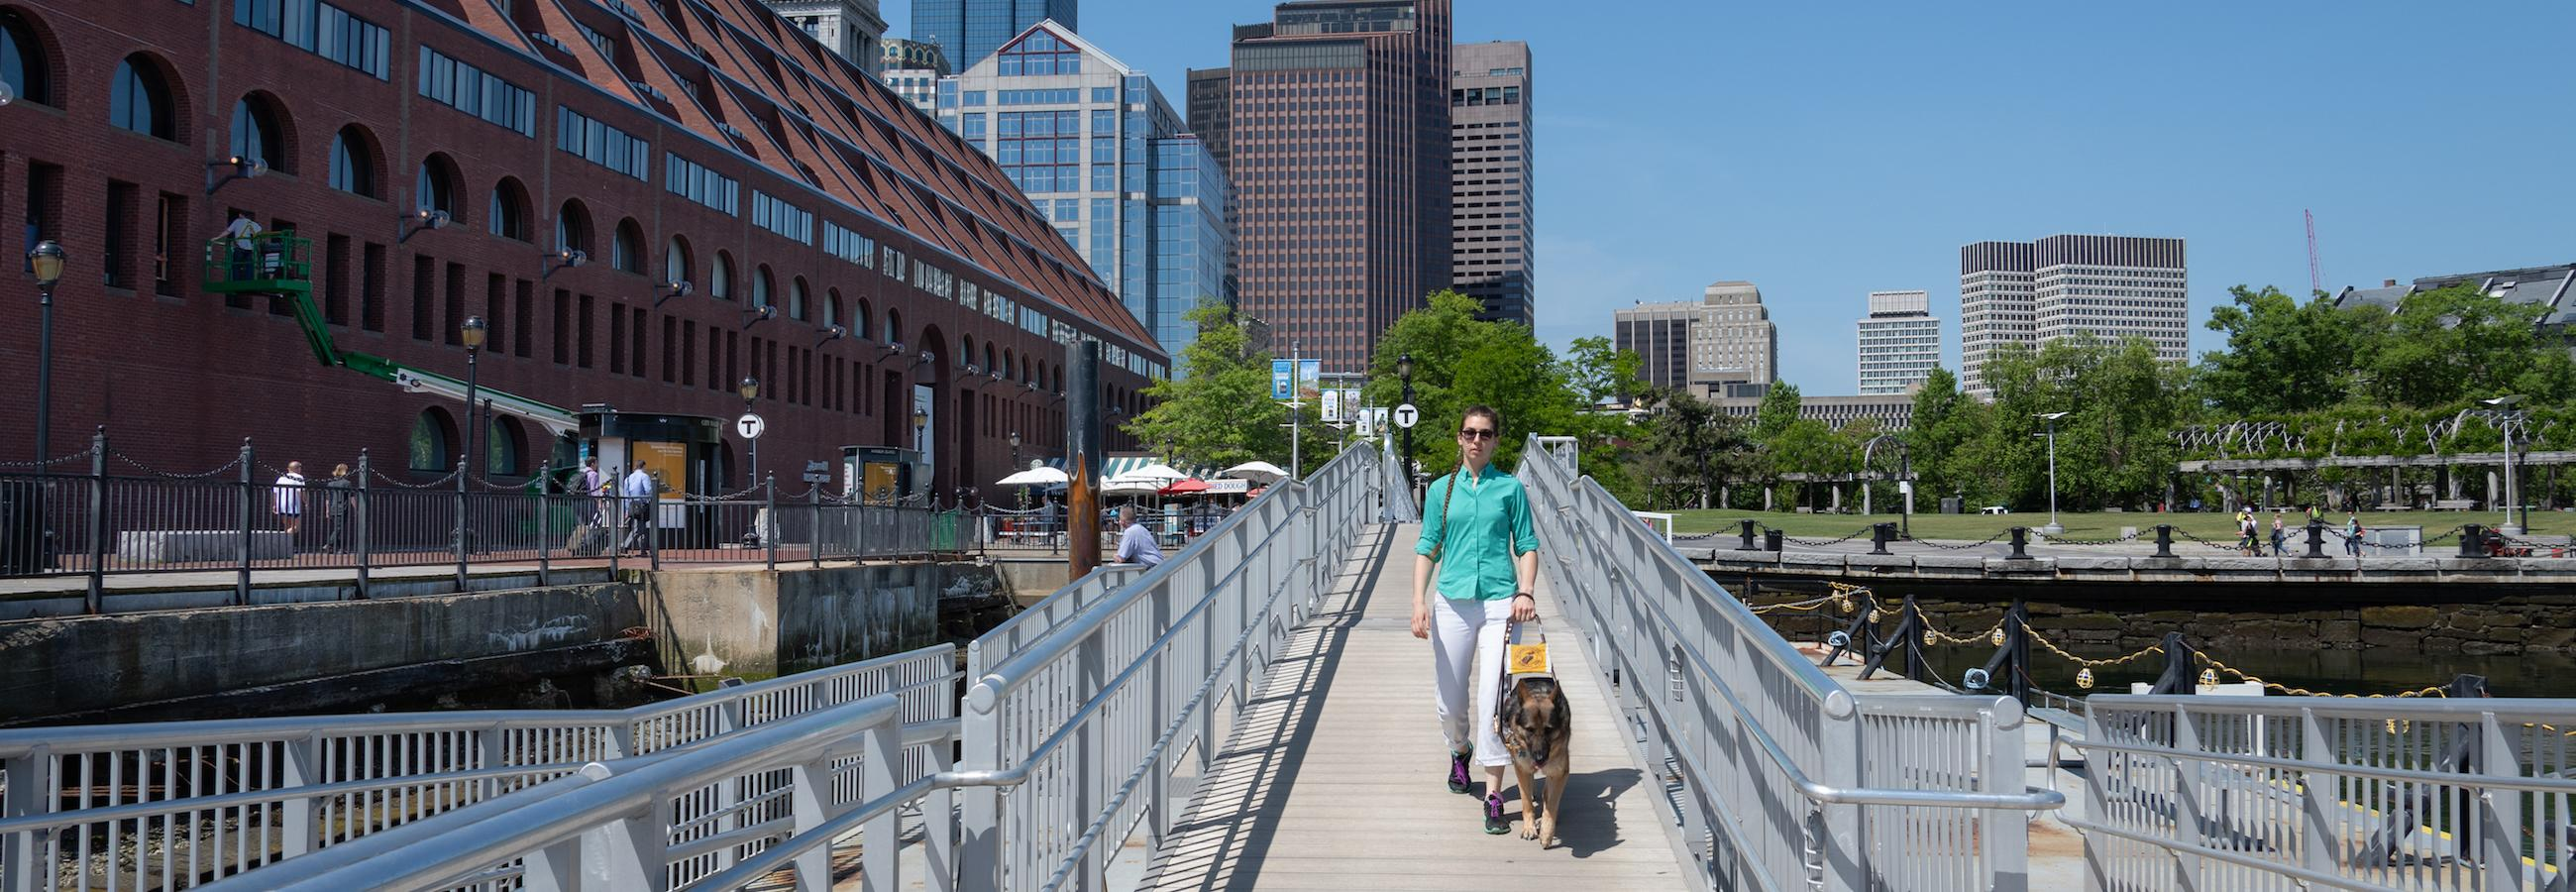 customer entering mbta ferry dock with guide dog